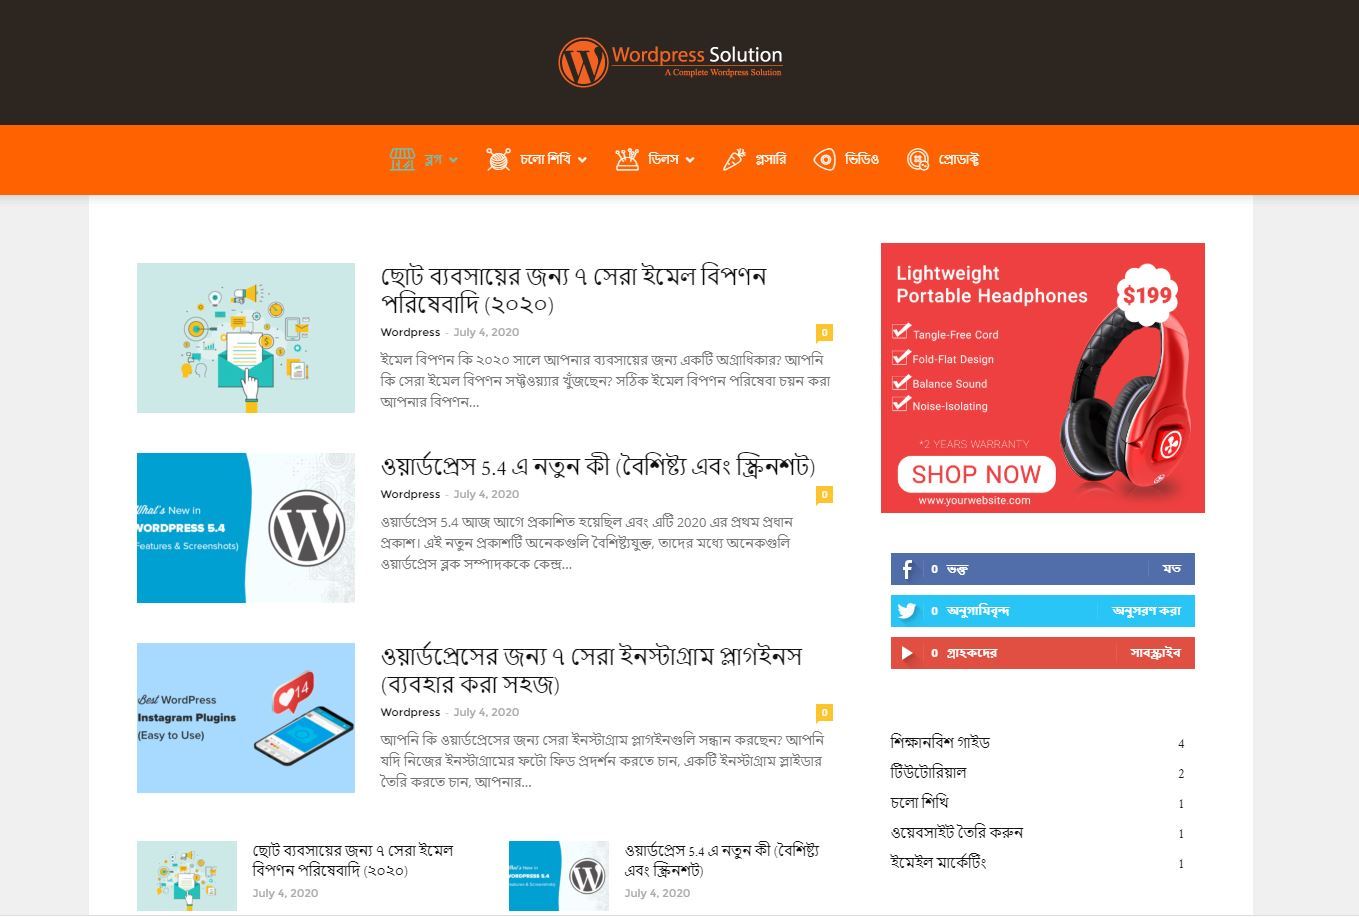 Get WordPress Problem Solution at a place in Bangla